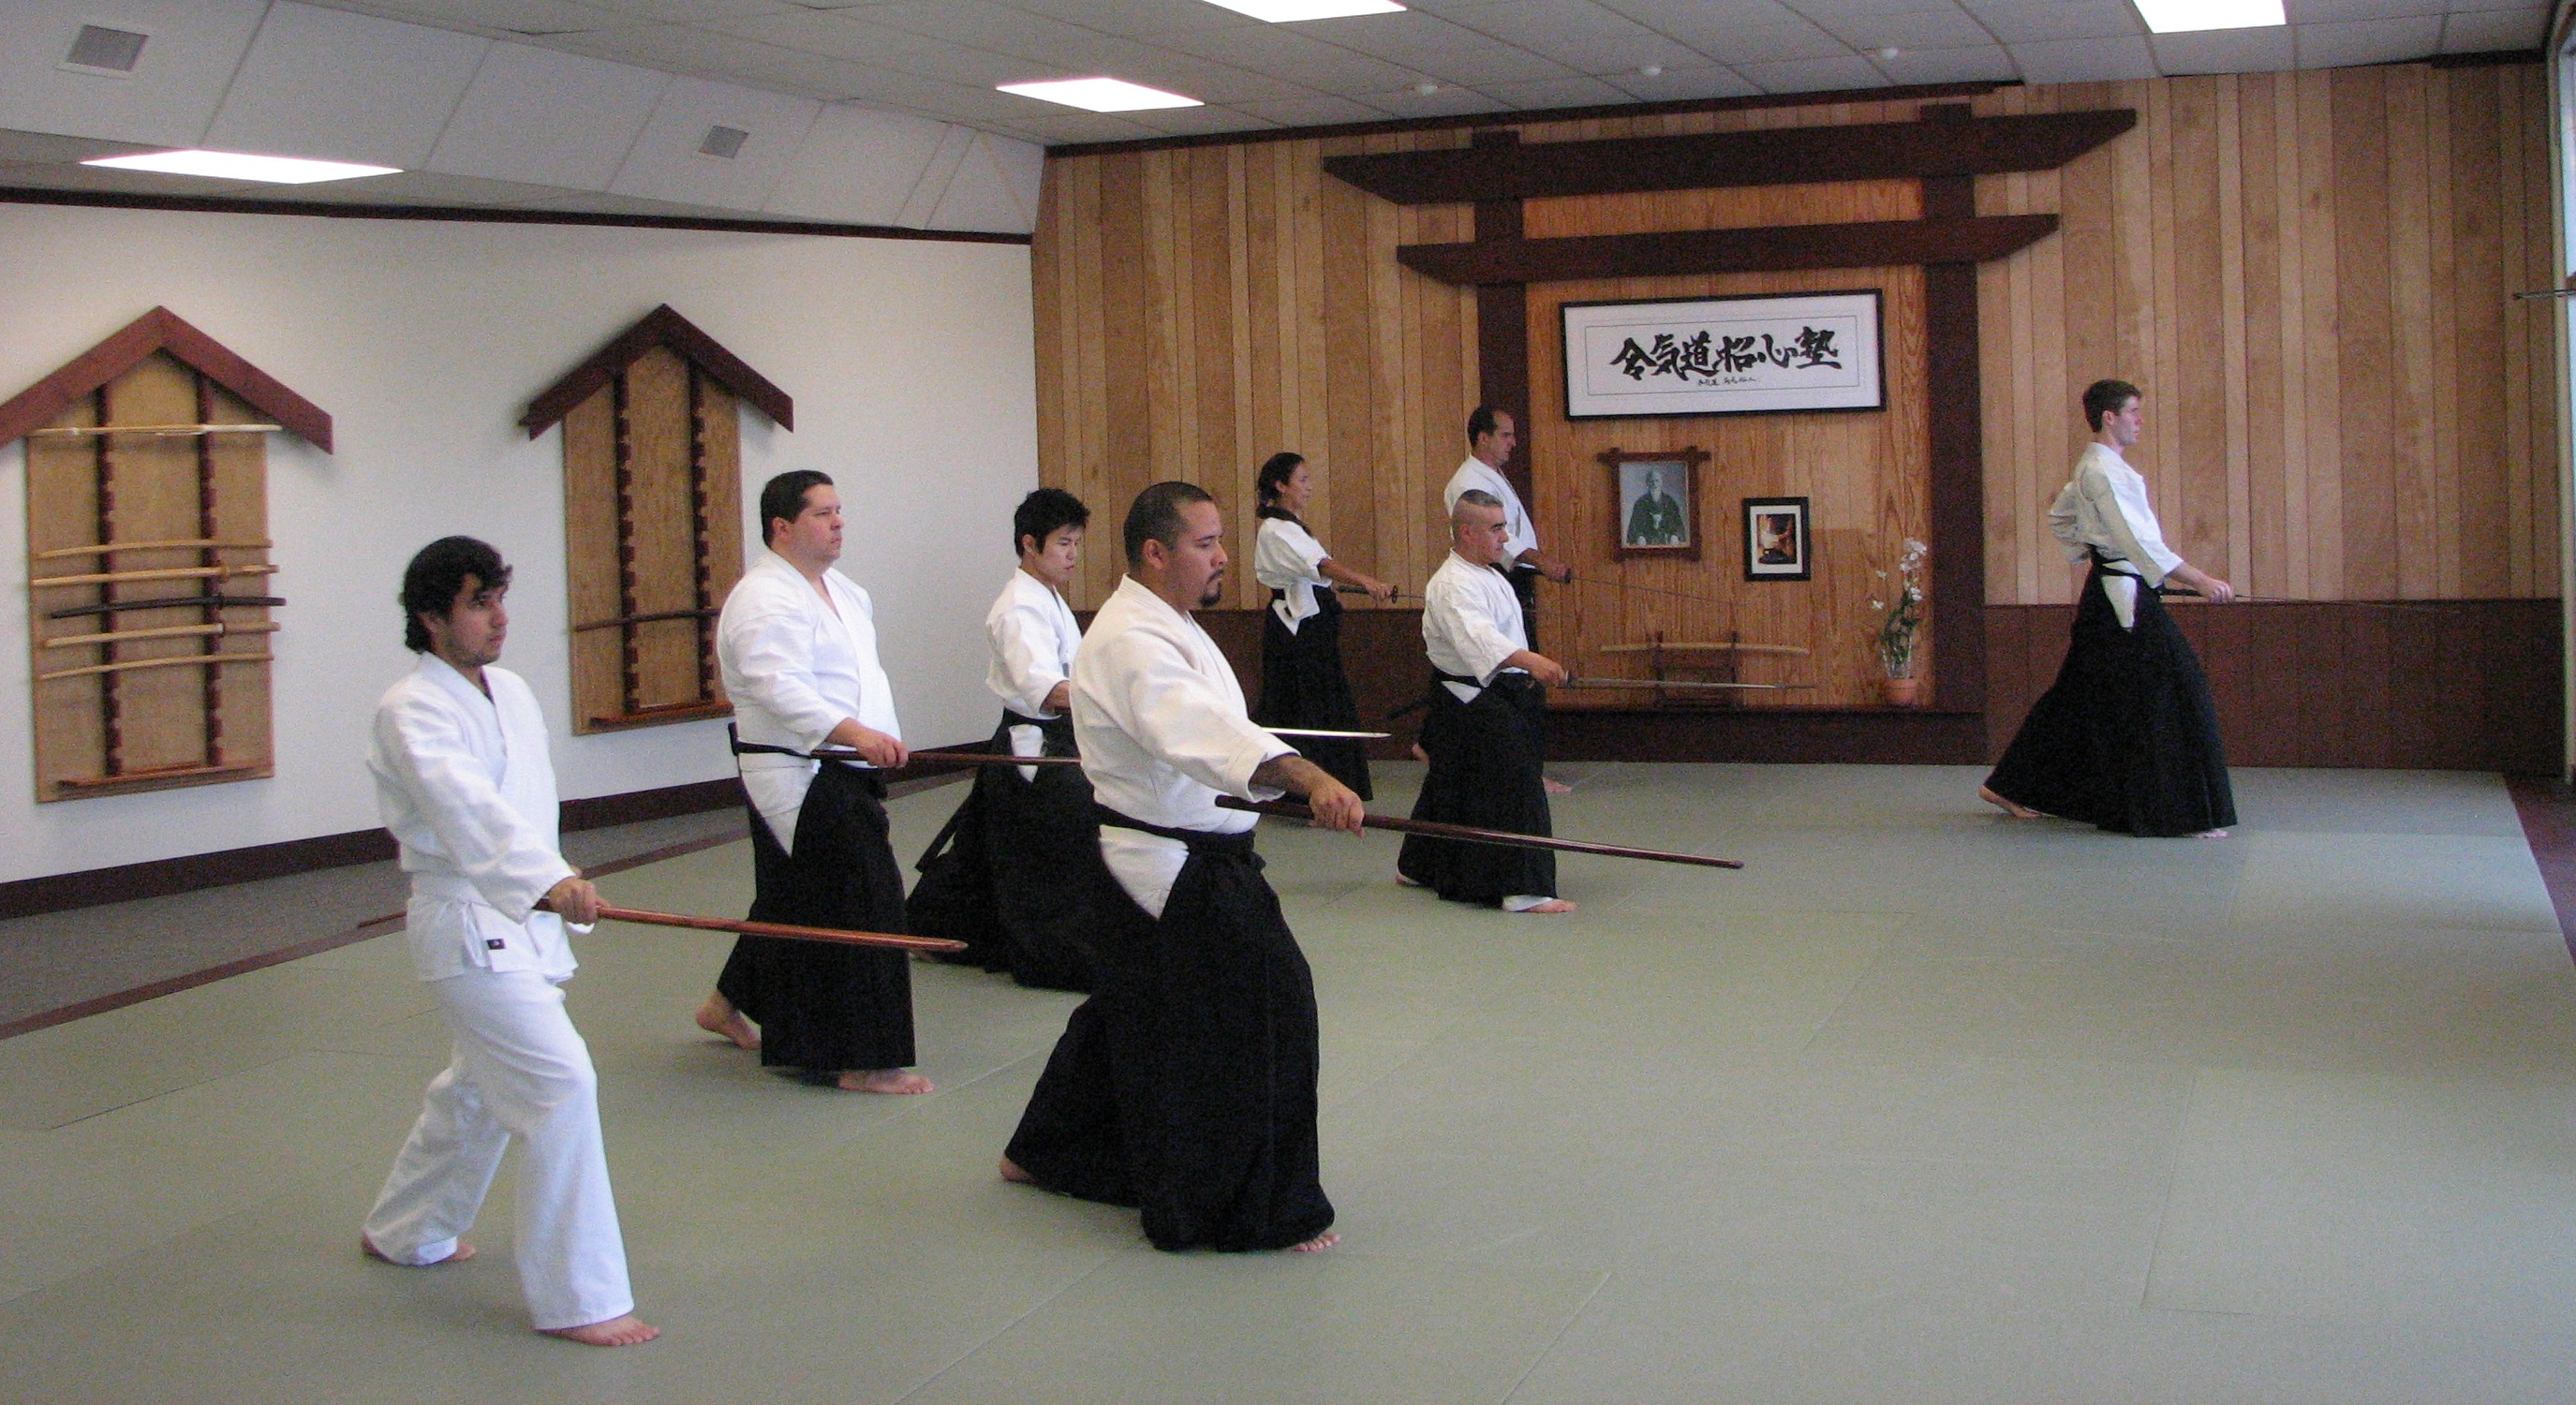 aikido sport Christina kelly is an editor for aikido journal and has practiced aikido for about a year, currently holding the rank of fourth kyu she is a professional writer and editor specializing in video games and.